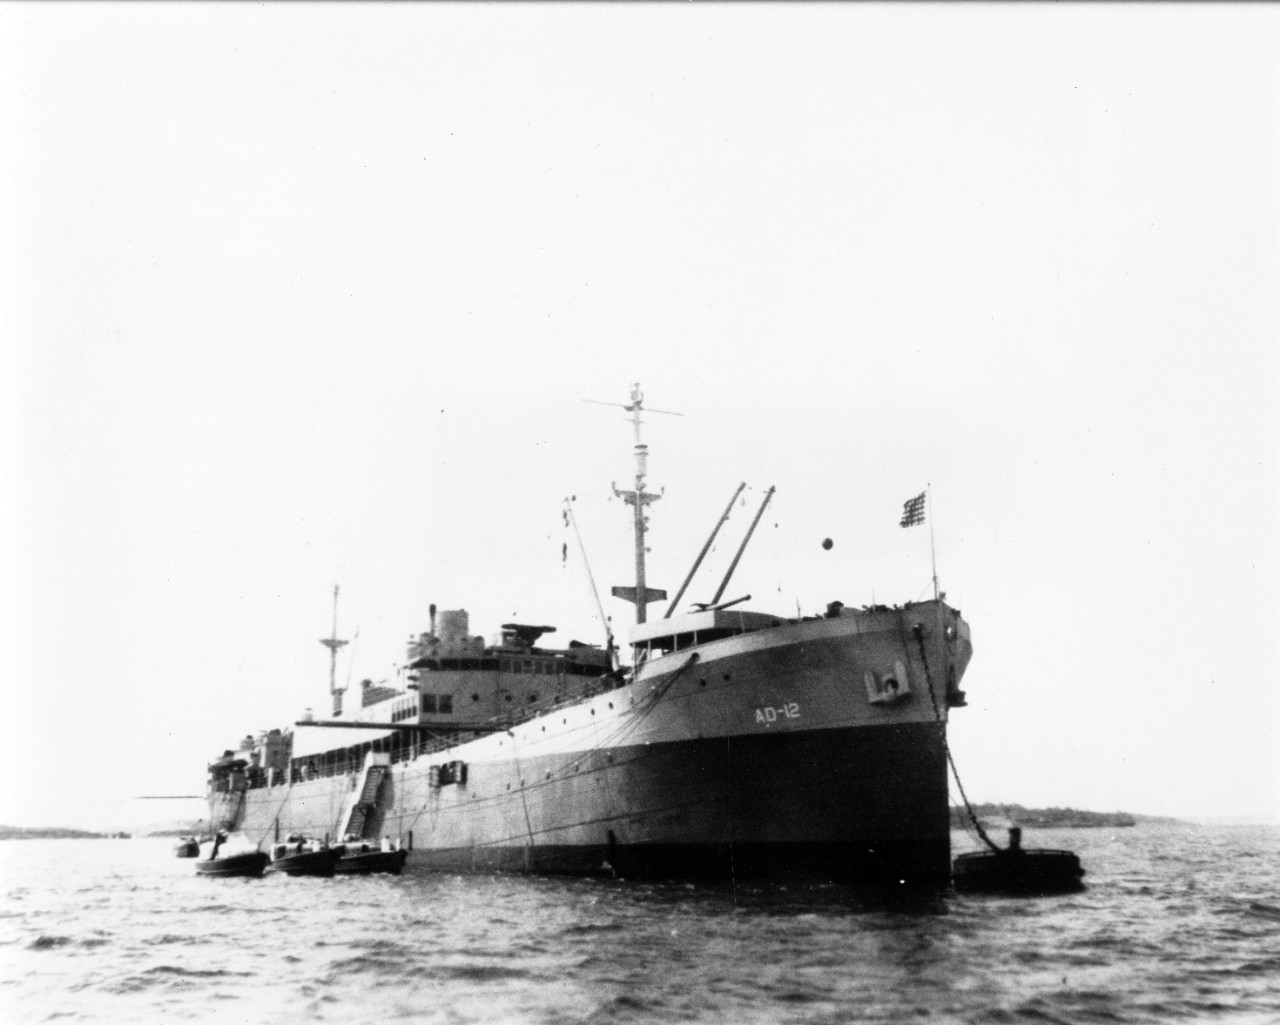 Single image donation of a b/w photo (copy) of USS Denebola (AD-12), circa WWII.